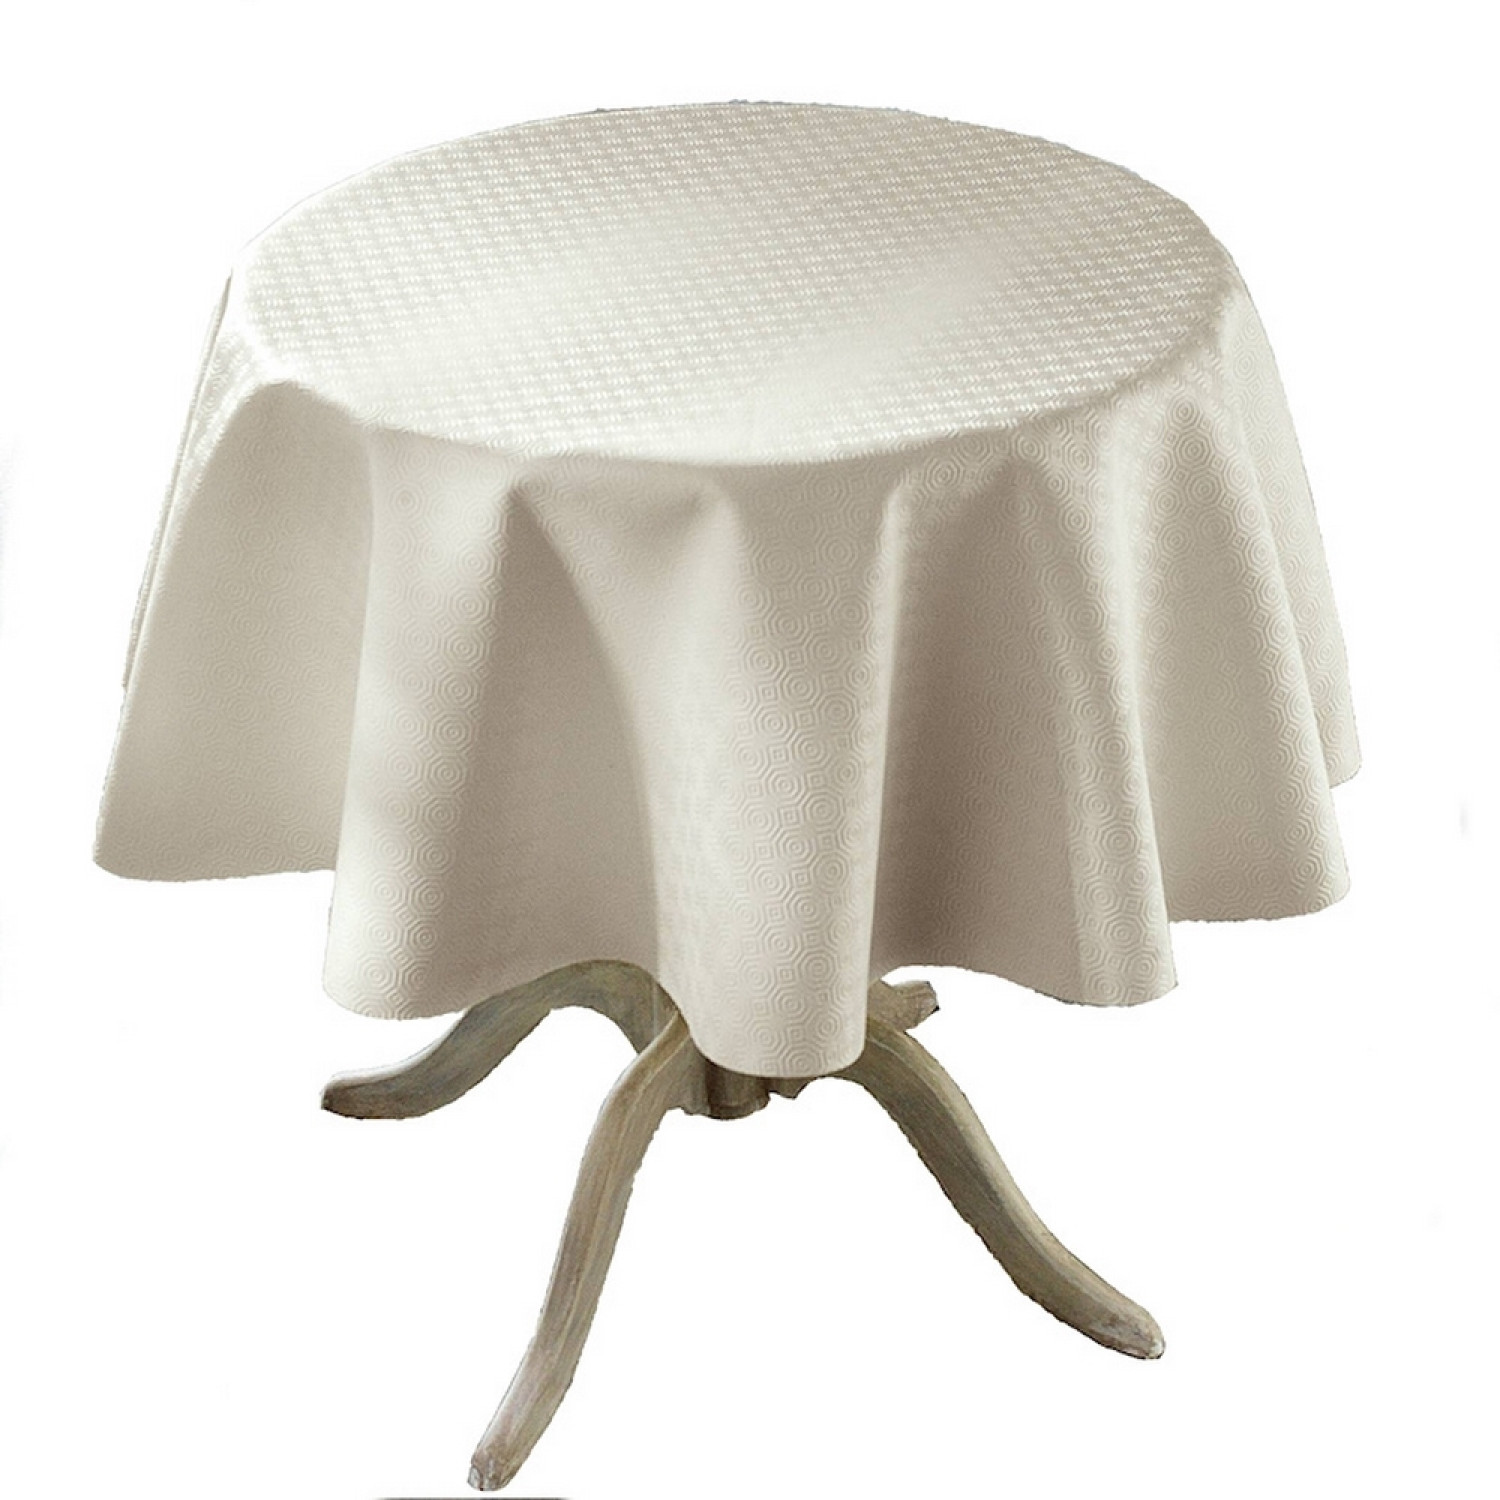 Sous nappe - Protection de table PVC - Ronde - Lavable en machine - Type bulgomme - Beige